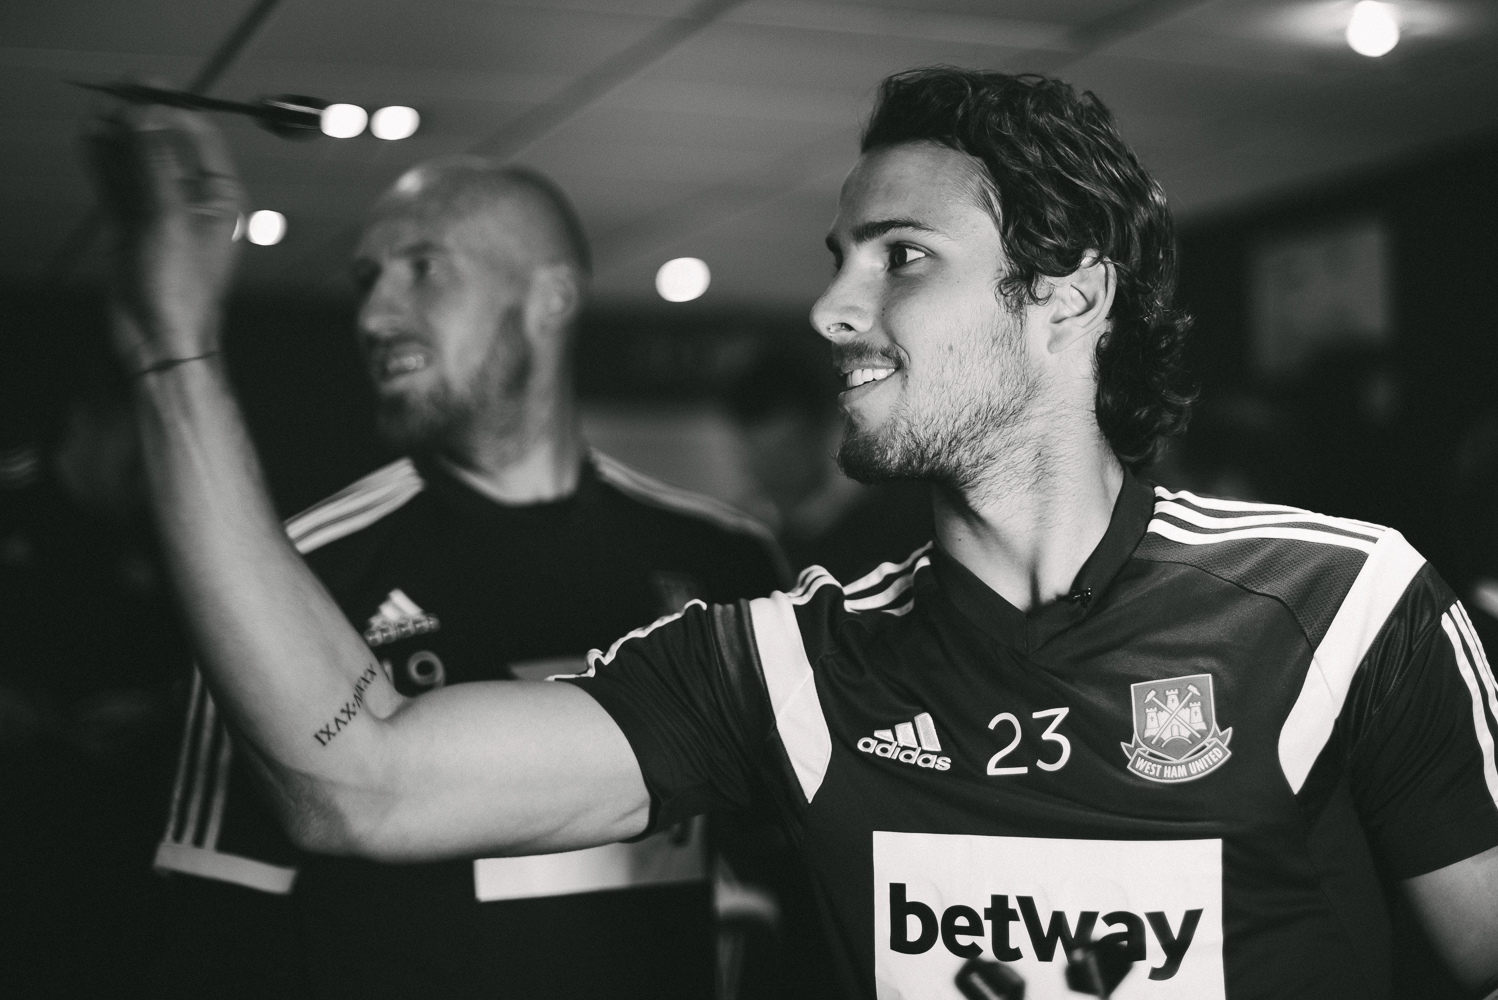 Betway_WestHam_Alex_Wallace_Photography_0115.jpg